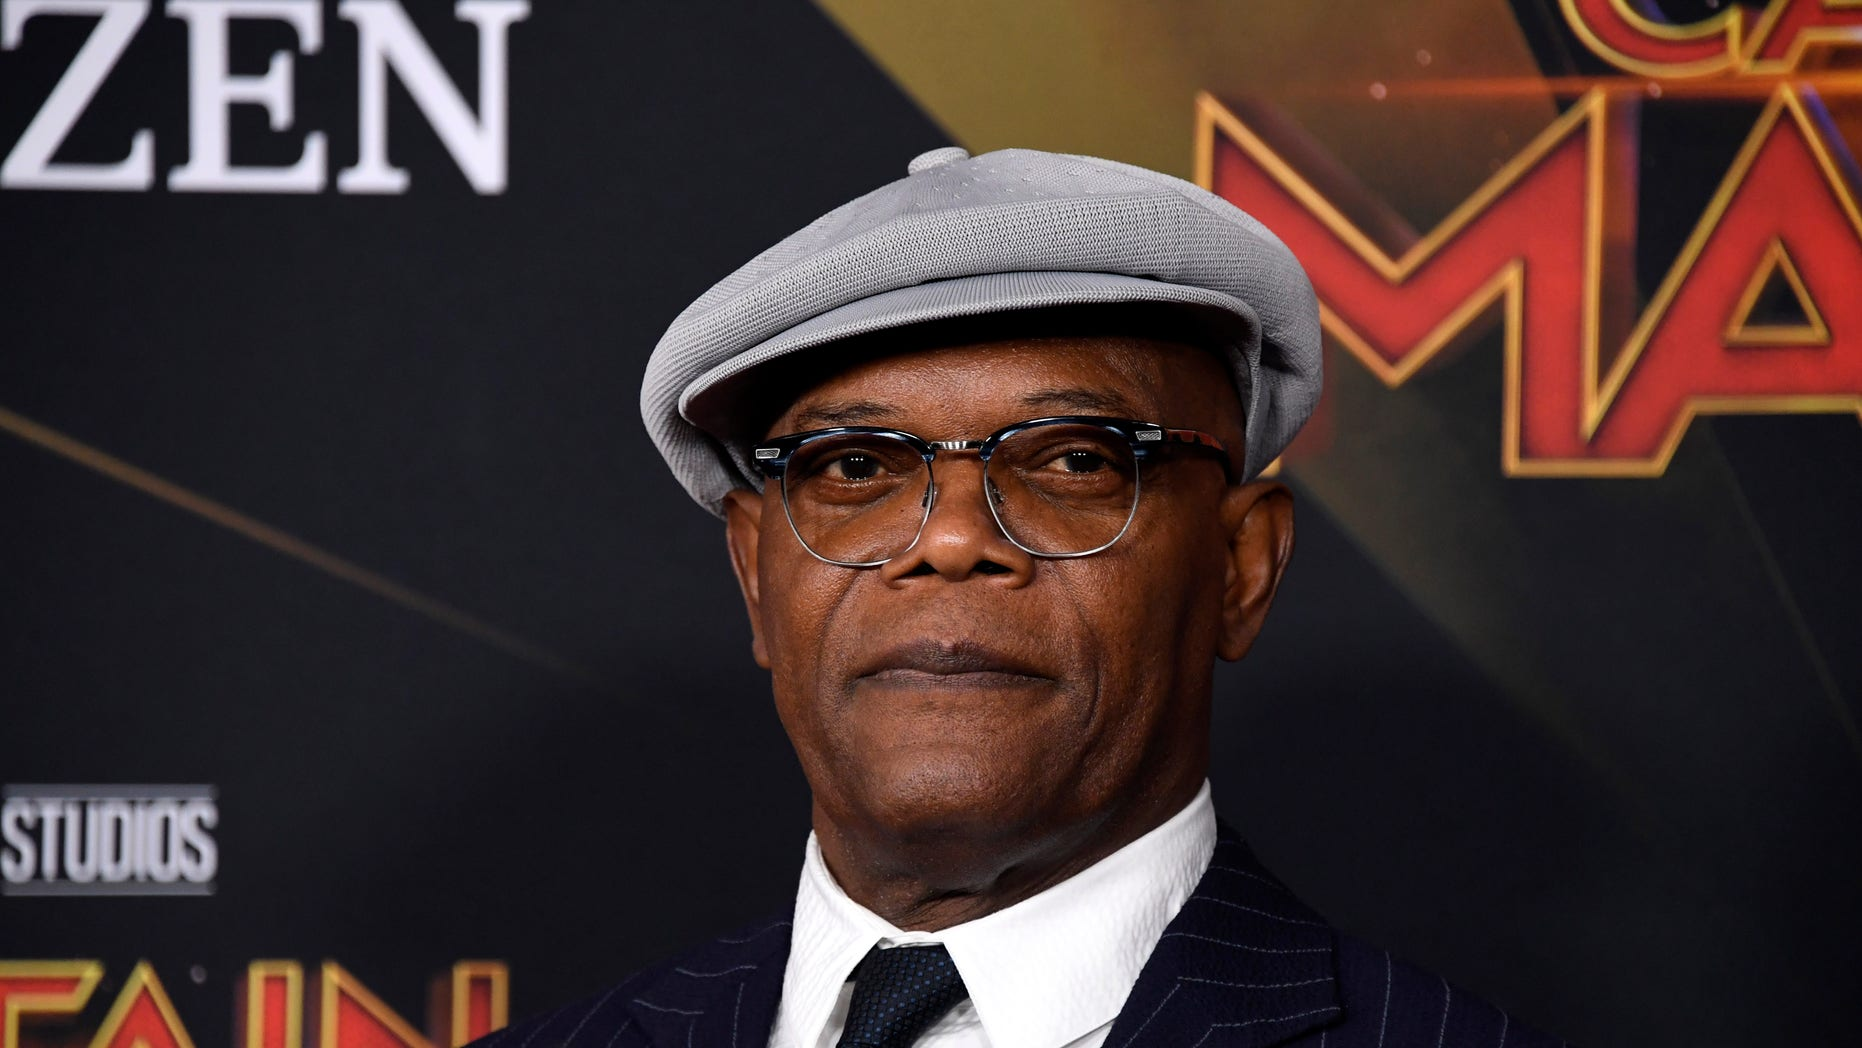 """HOLLYWOOD, CALIFORNIA - MARCH 04: Samuel L. Jackson attends Marvel Studios """"Captain Marvel"""" Premiere on March 04, 2019 in Hollywood, California. (Photo by Frazer Harrison/Getty Images)"""